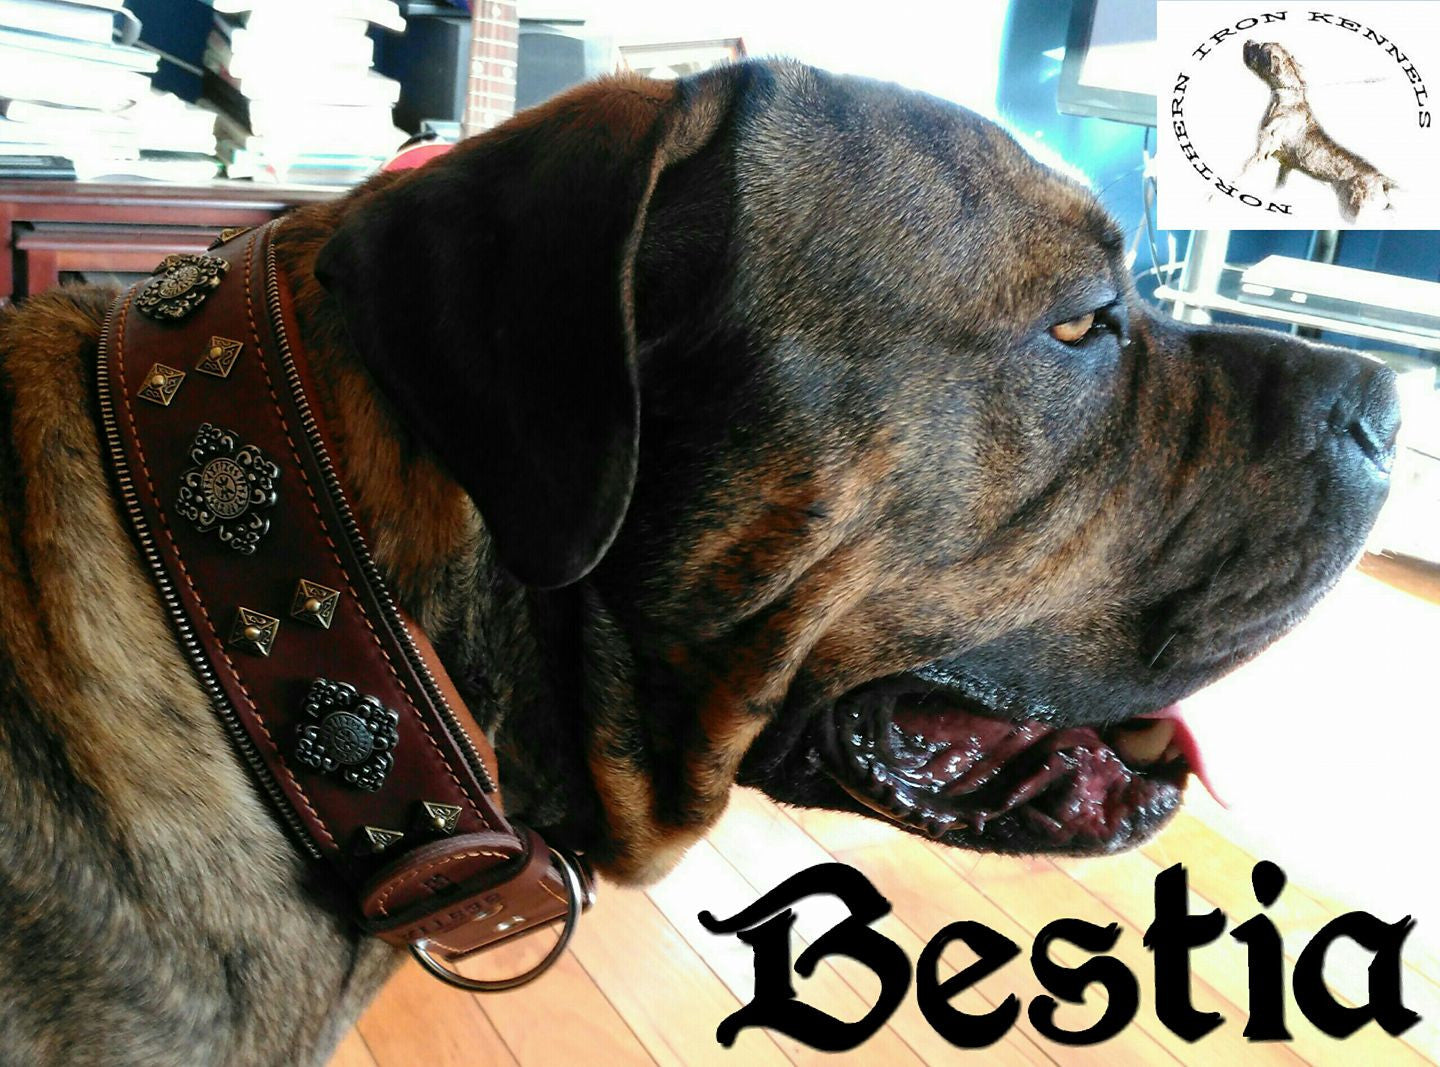 New Bestia Dog Gear New Collar Harness And Leashes